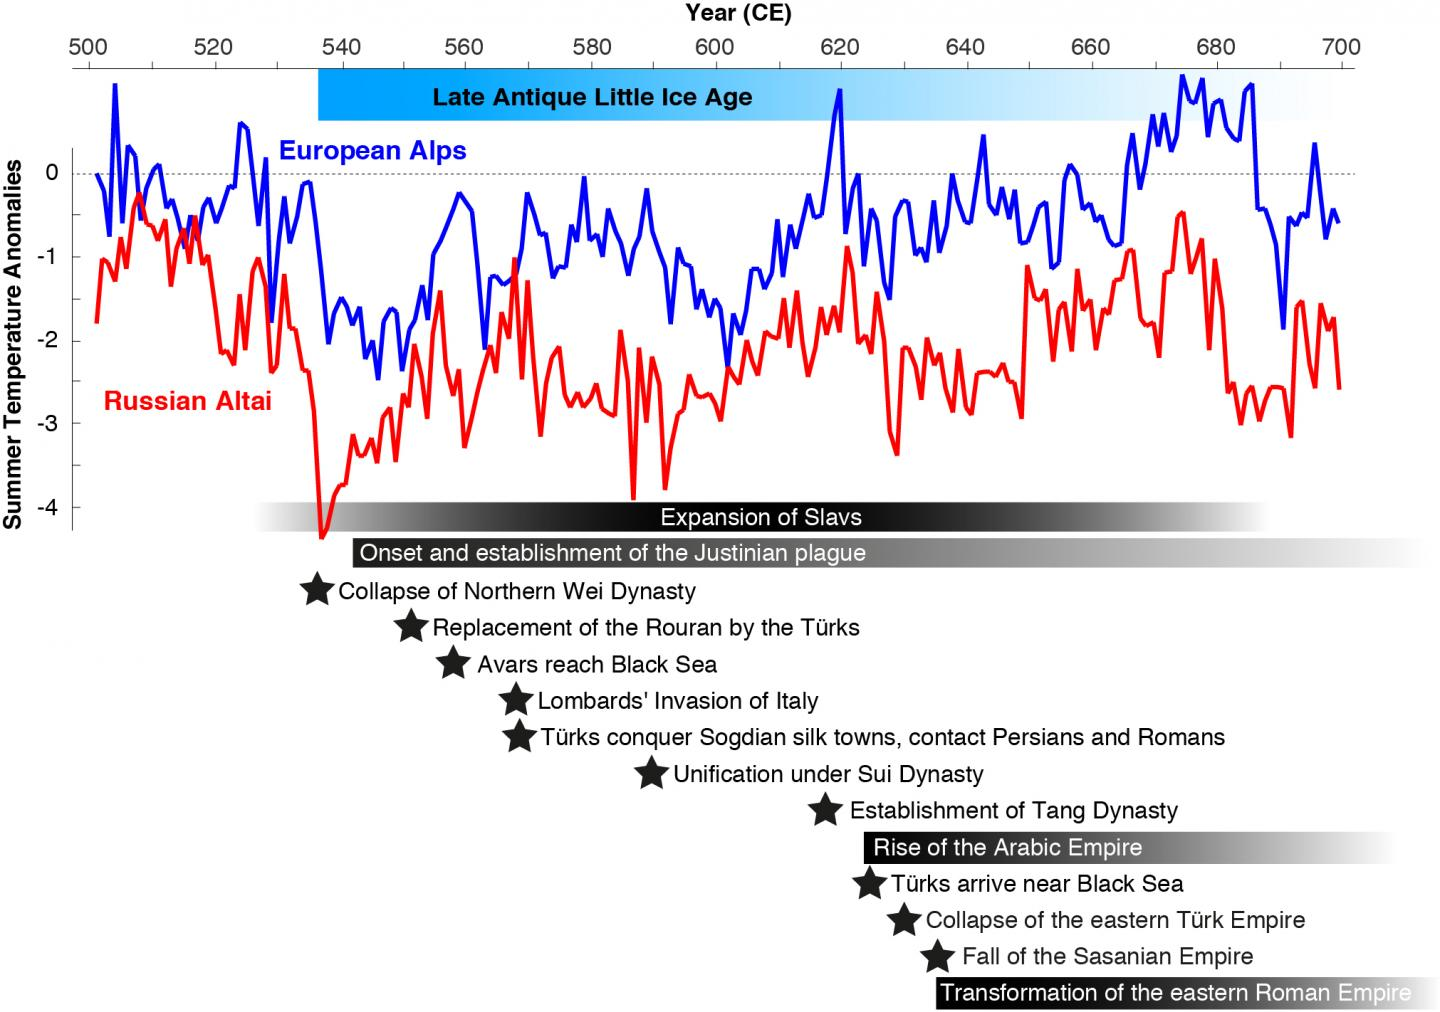 Cooling Between 500 And 700 CE And Societal Change During The Late Antique Little Ice Age